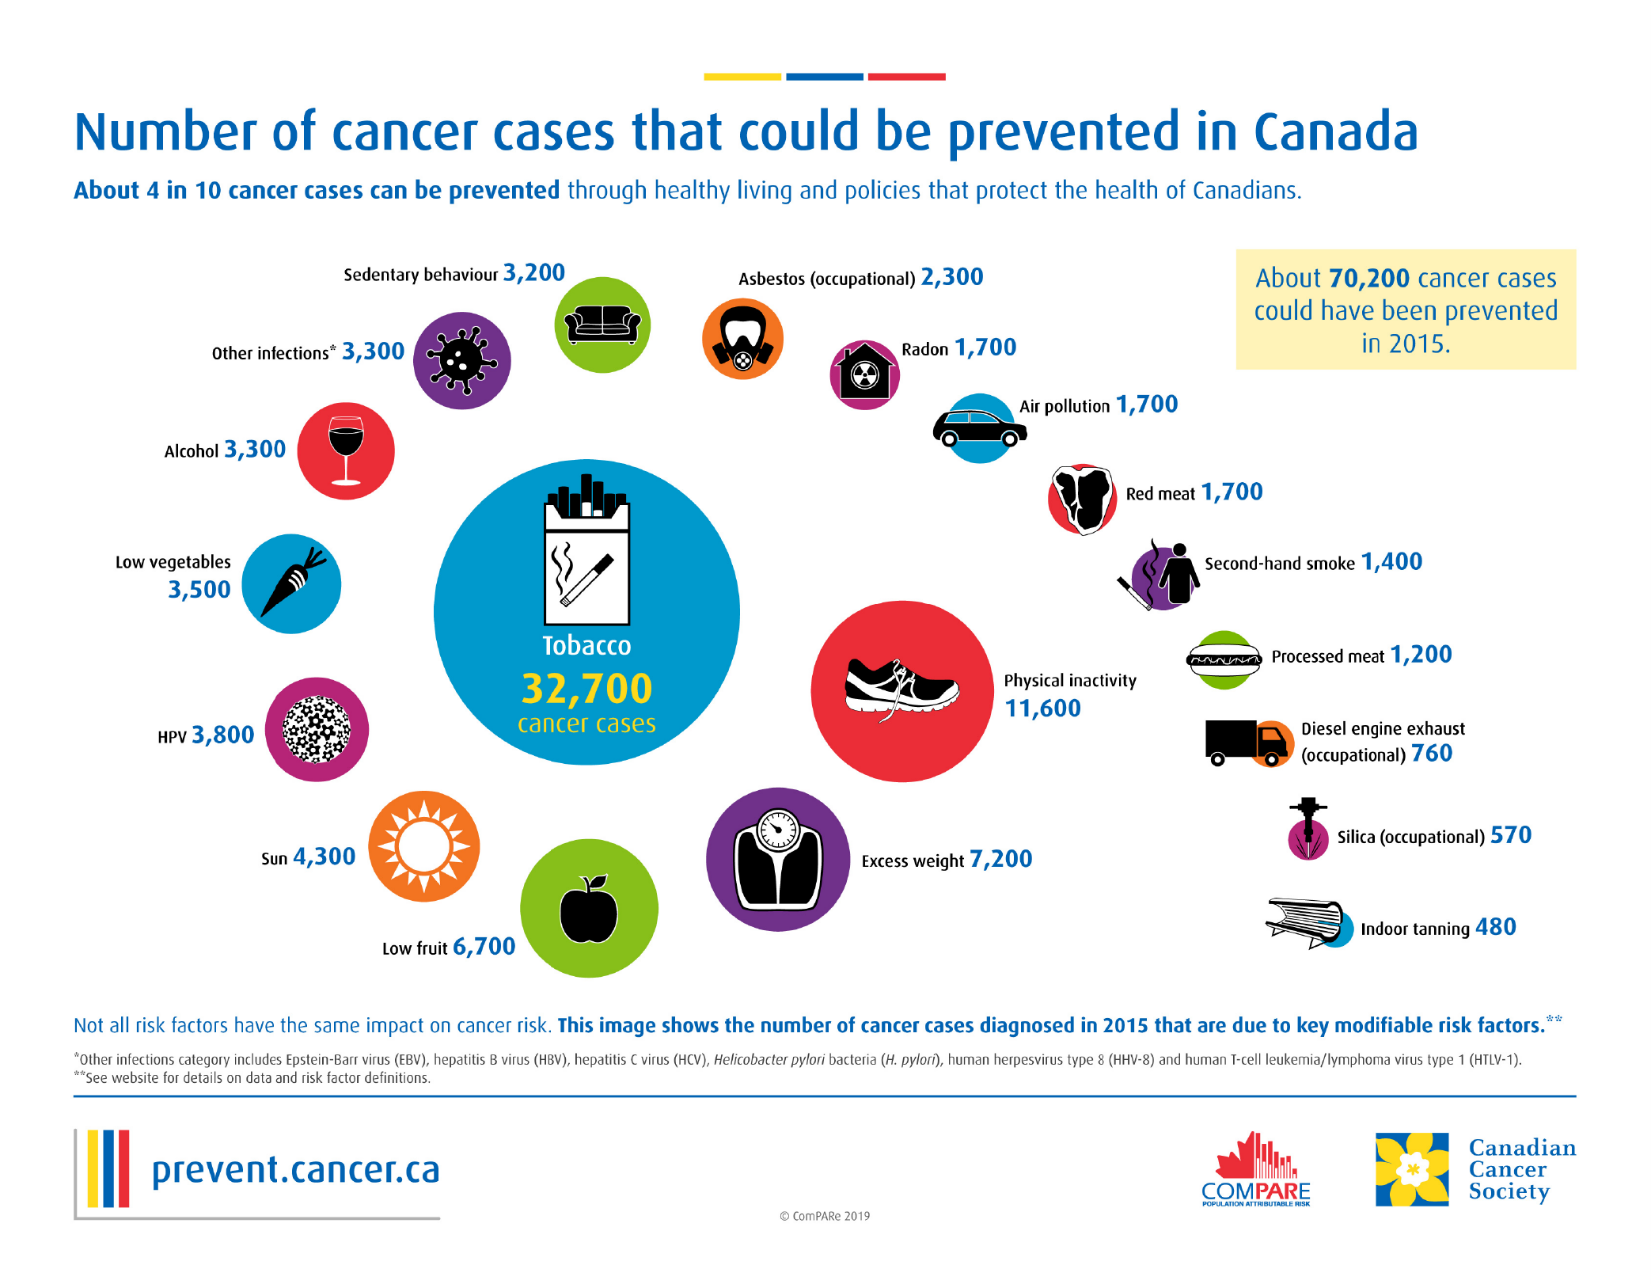 The ComPARe study paints a clear picture of preventable cancer cases in Canada. The findings help us understand where we can change our lifestyles and environments to prevent cancer – and what the future will look like if we do.